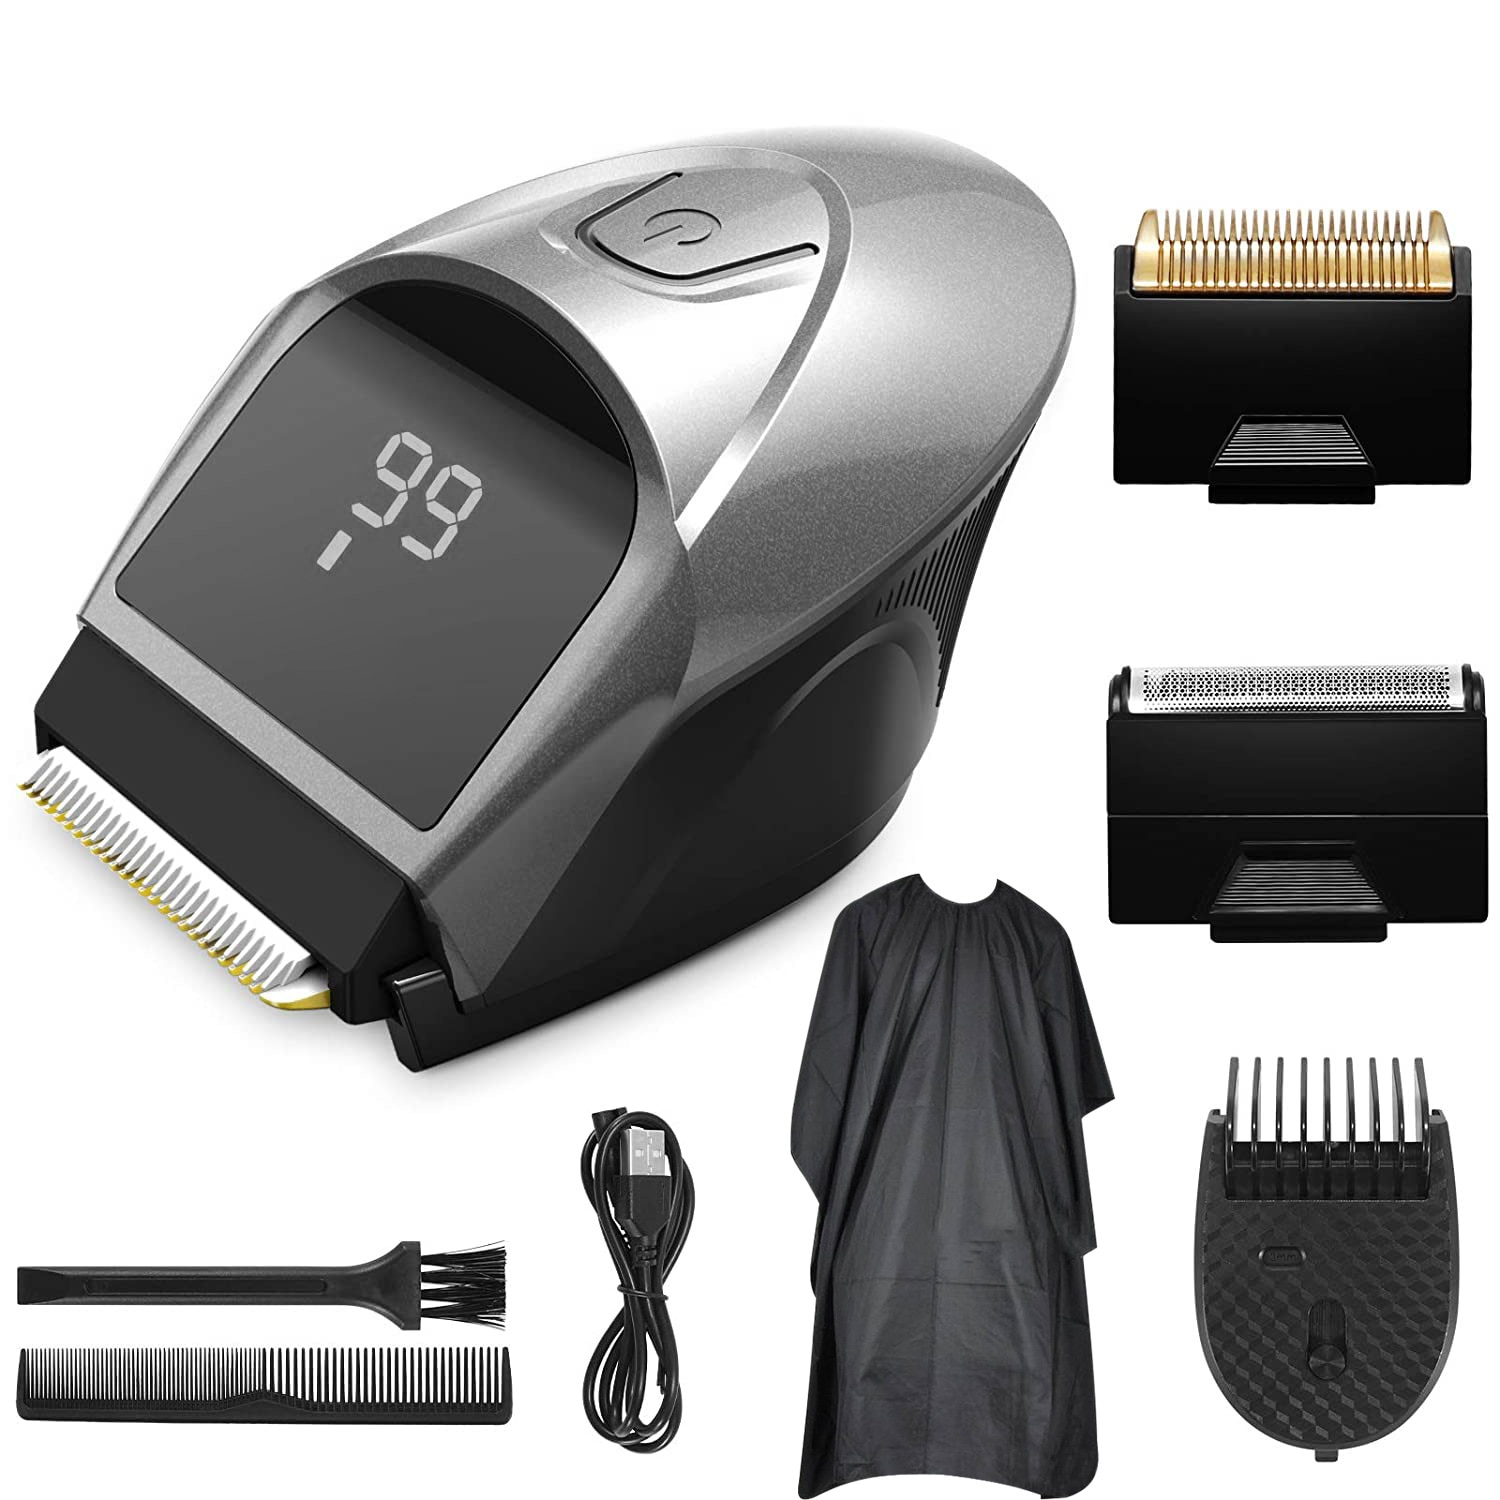 classic body grooming hair clippers shaving set haircut kit precision blade great for barbers and stylist guide combs attachment FOXSONIC Self-Haircut Hair Clippers Men Head Clipper Rechargeable Shortcut Grooming Haircut Kit Cordless Electric Hair Trimmer